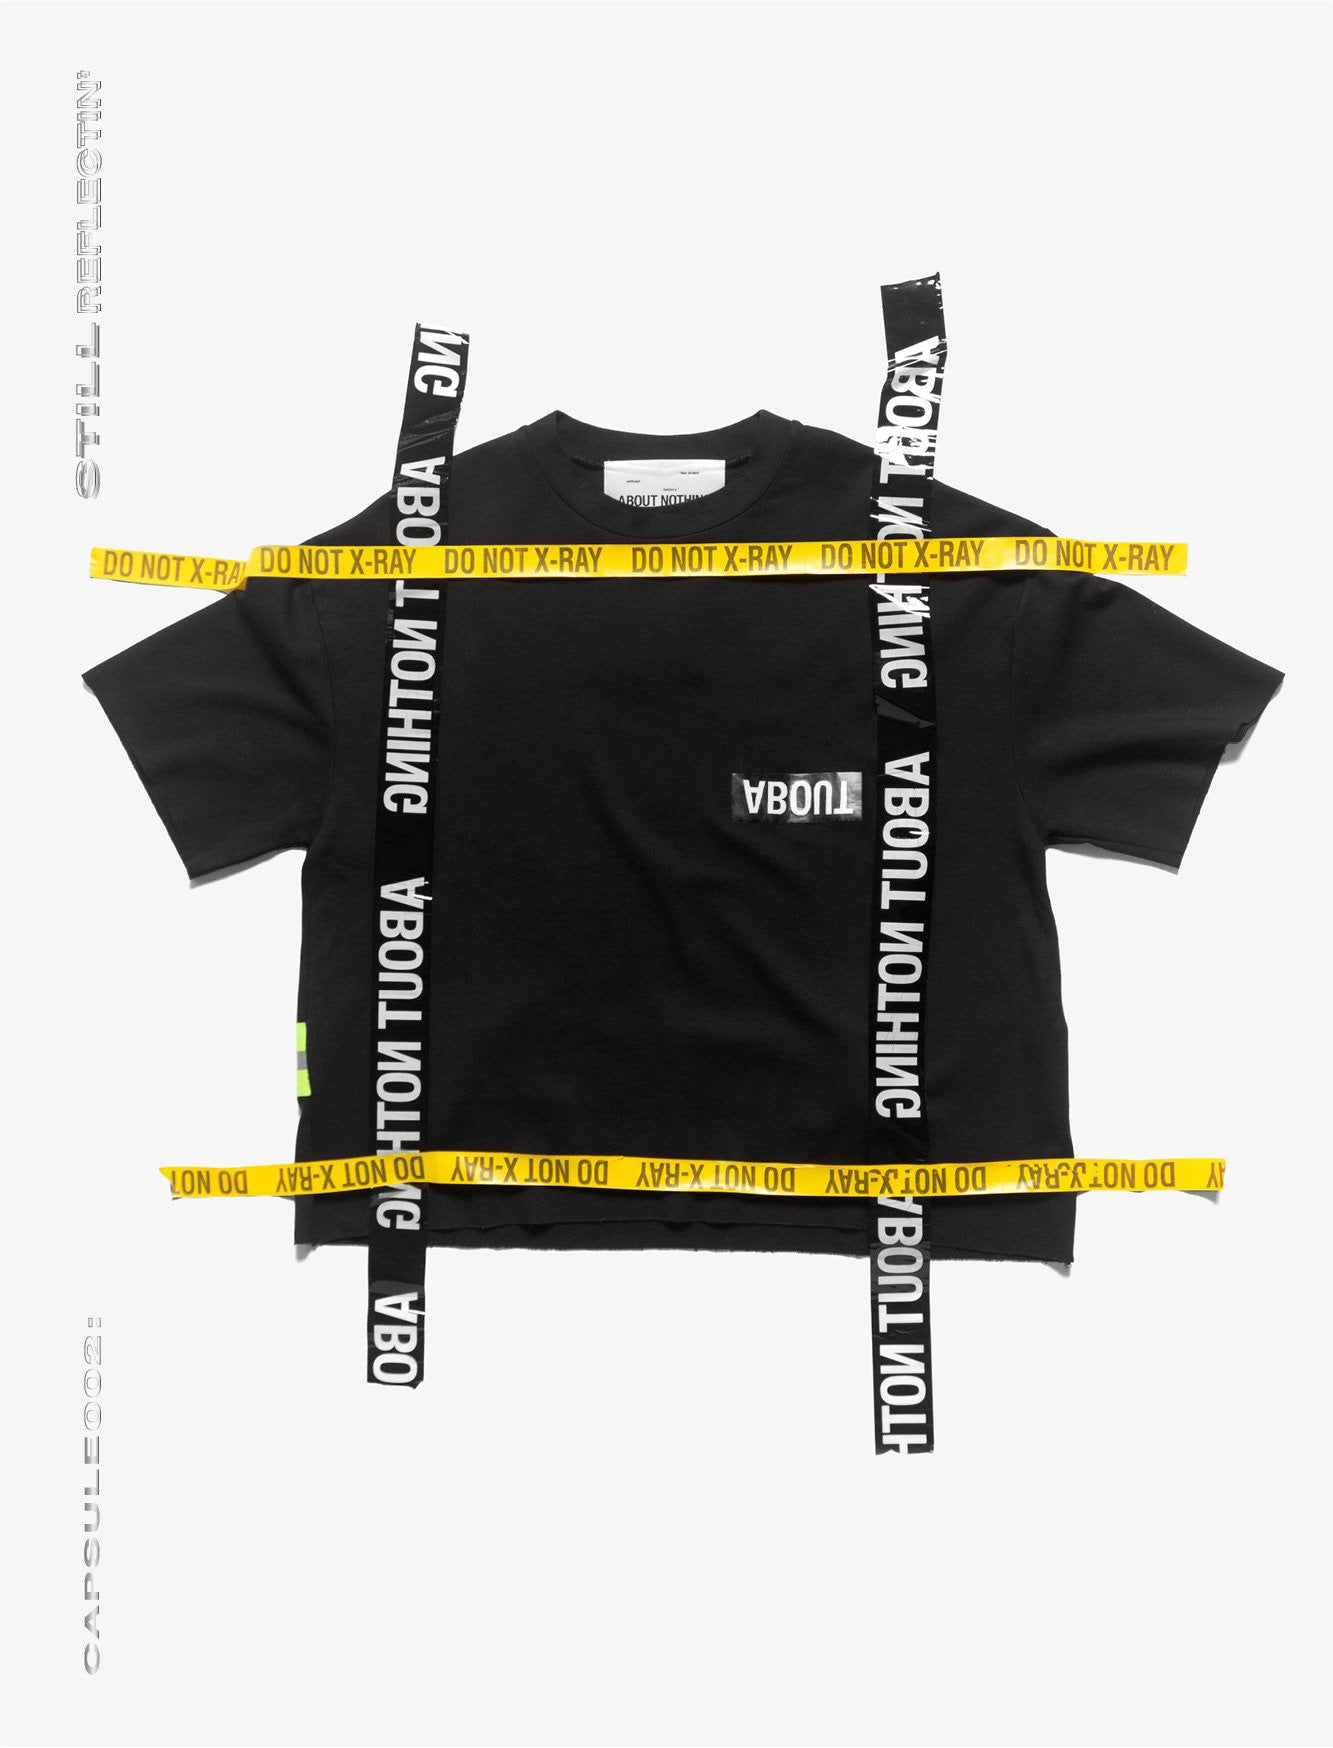 OVERSIZED T_SHIRT //REFLECTIVE STRAP  *SPECIAL EDITION [1/1] part. I